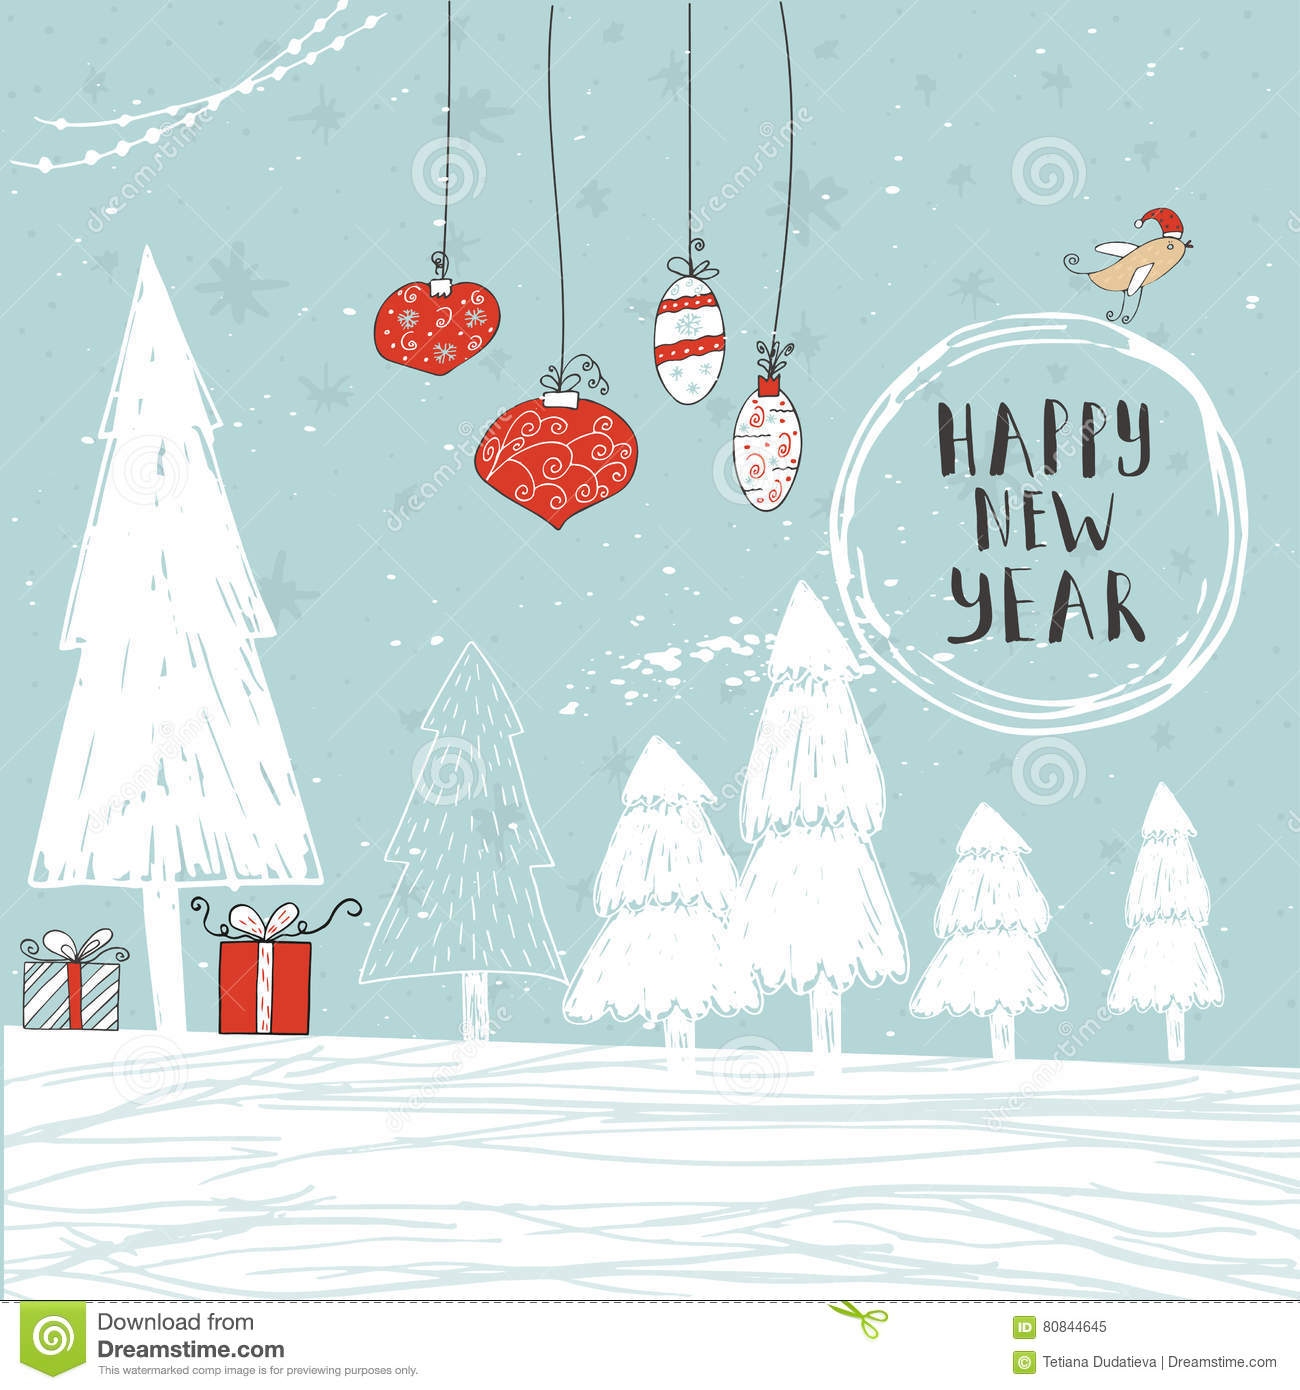 Christmas Gift Cards Stock Vector Illustration Of Design 80844645